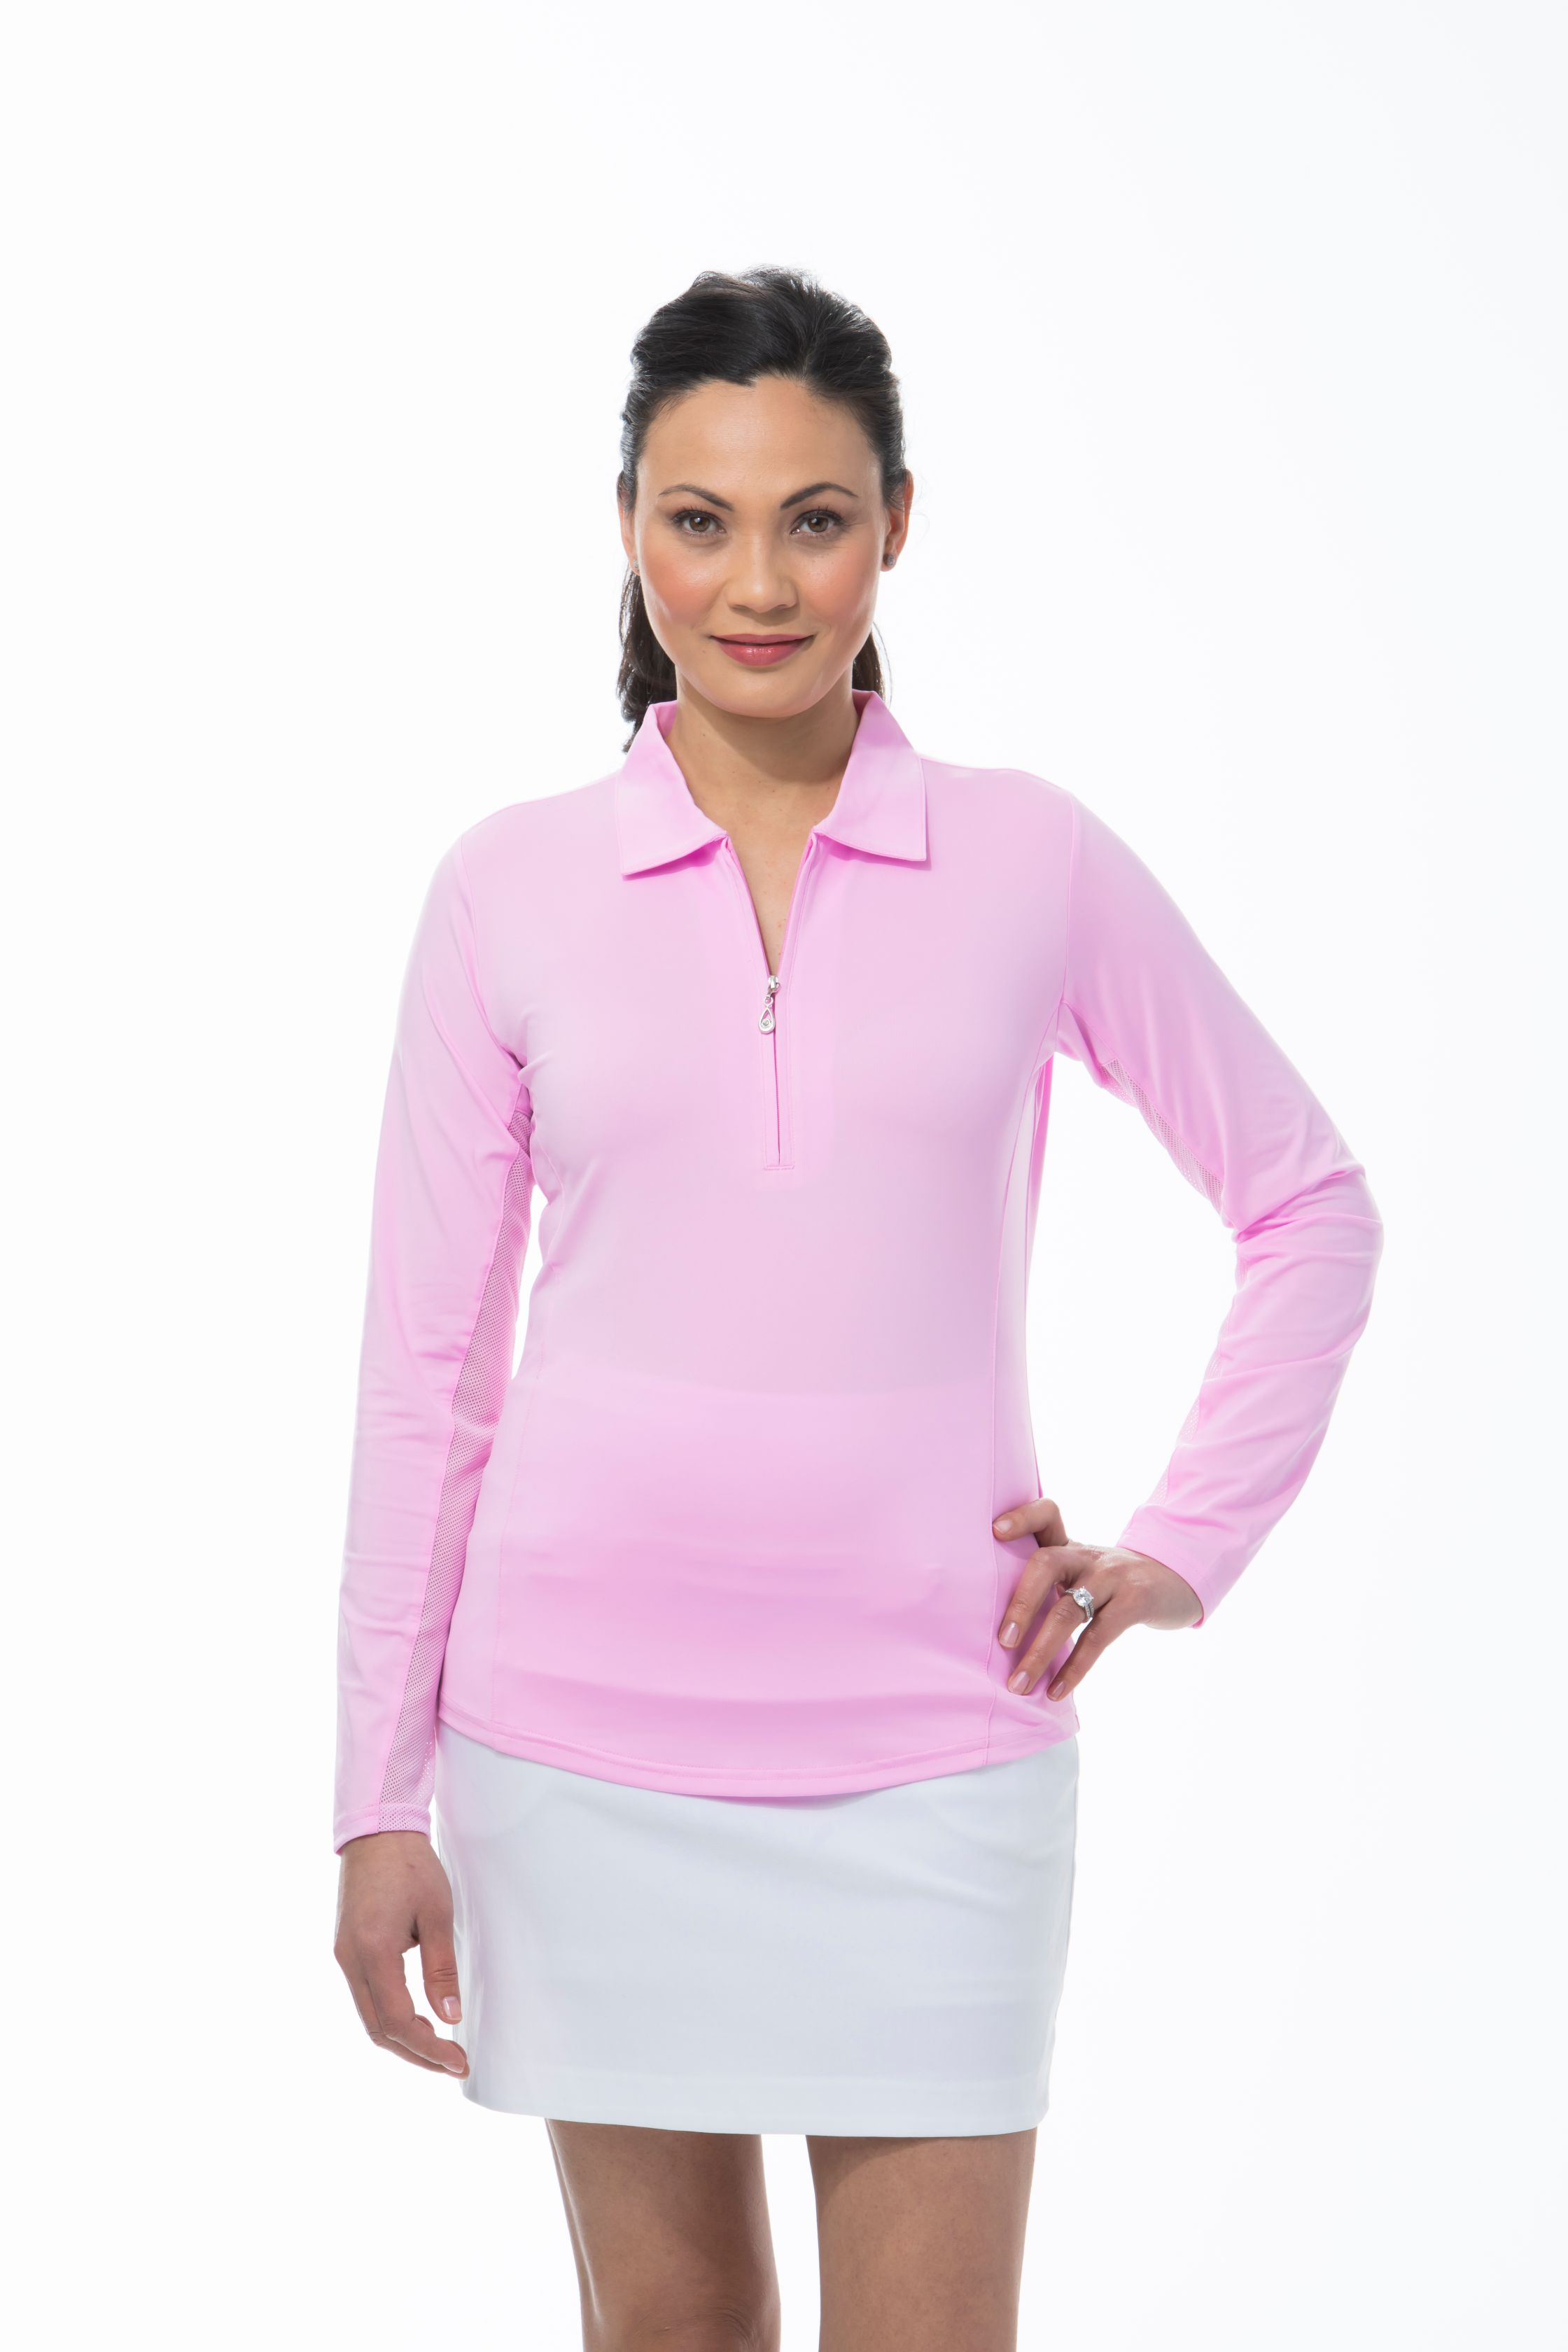 900433 SunGlow Zip Polo. Pink